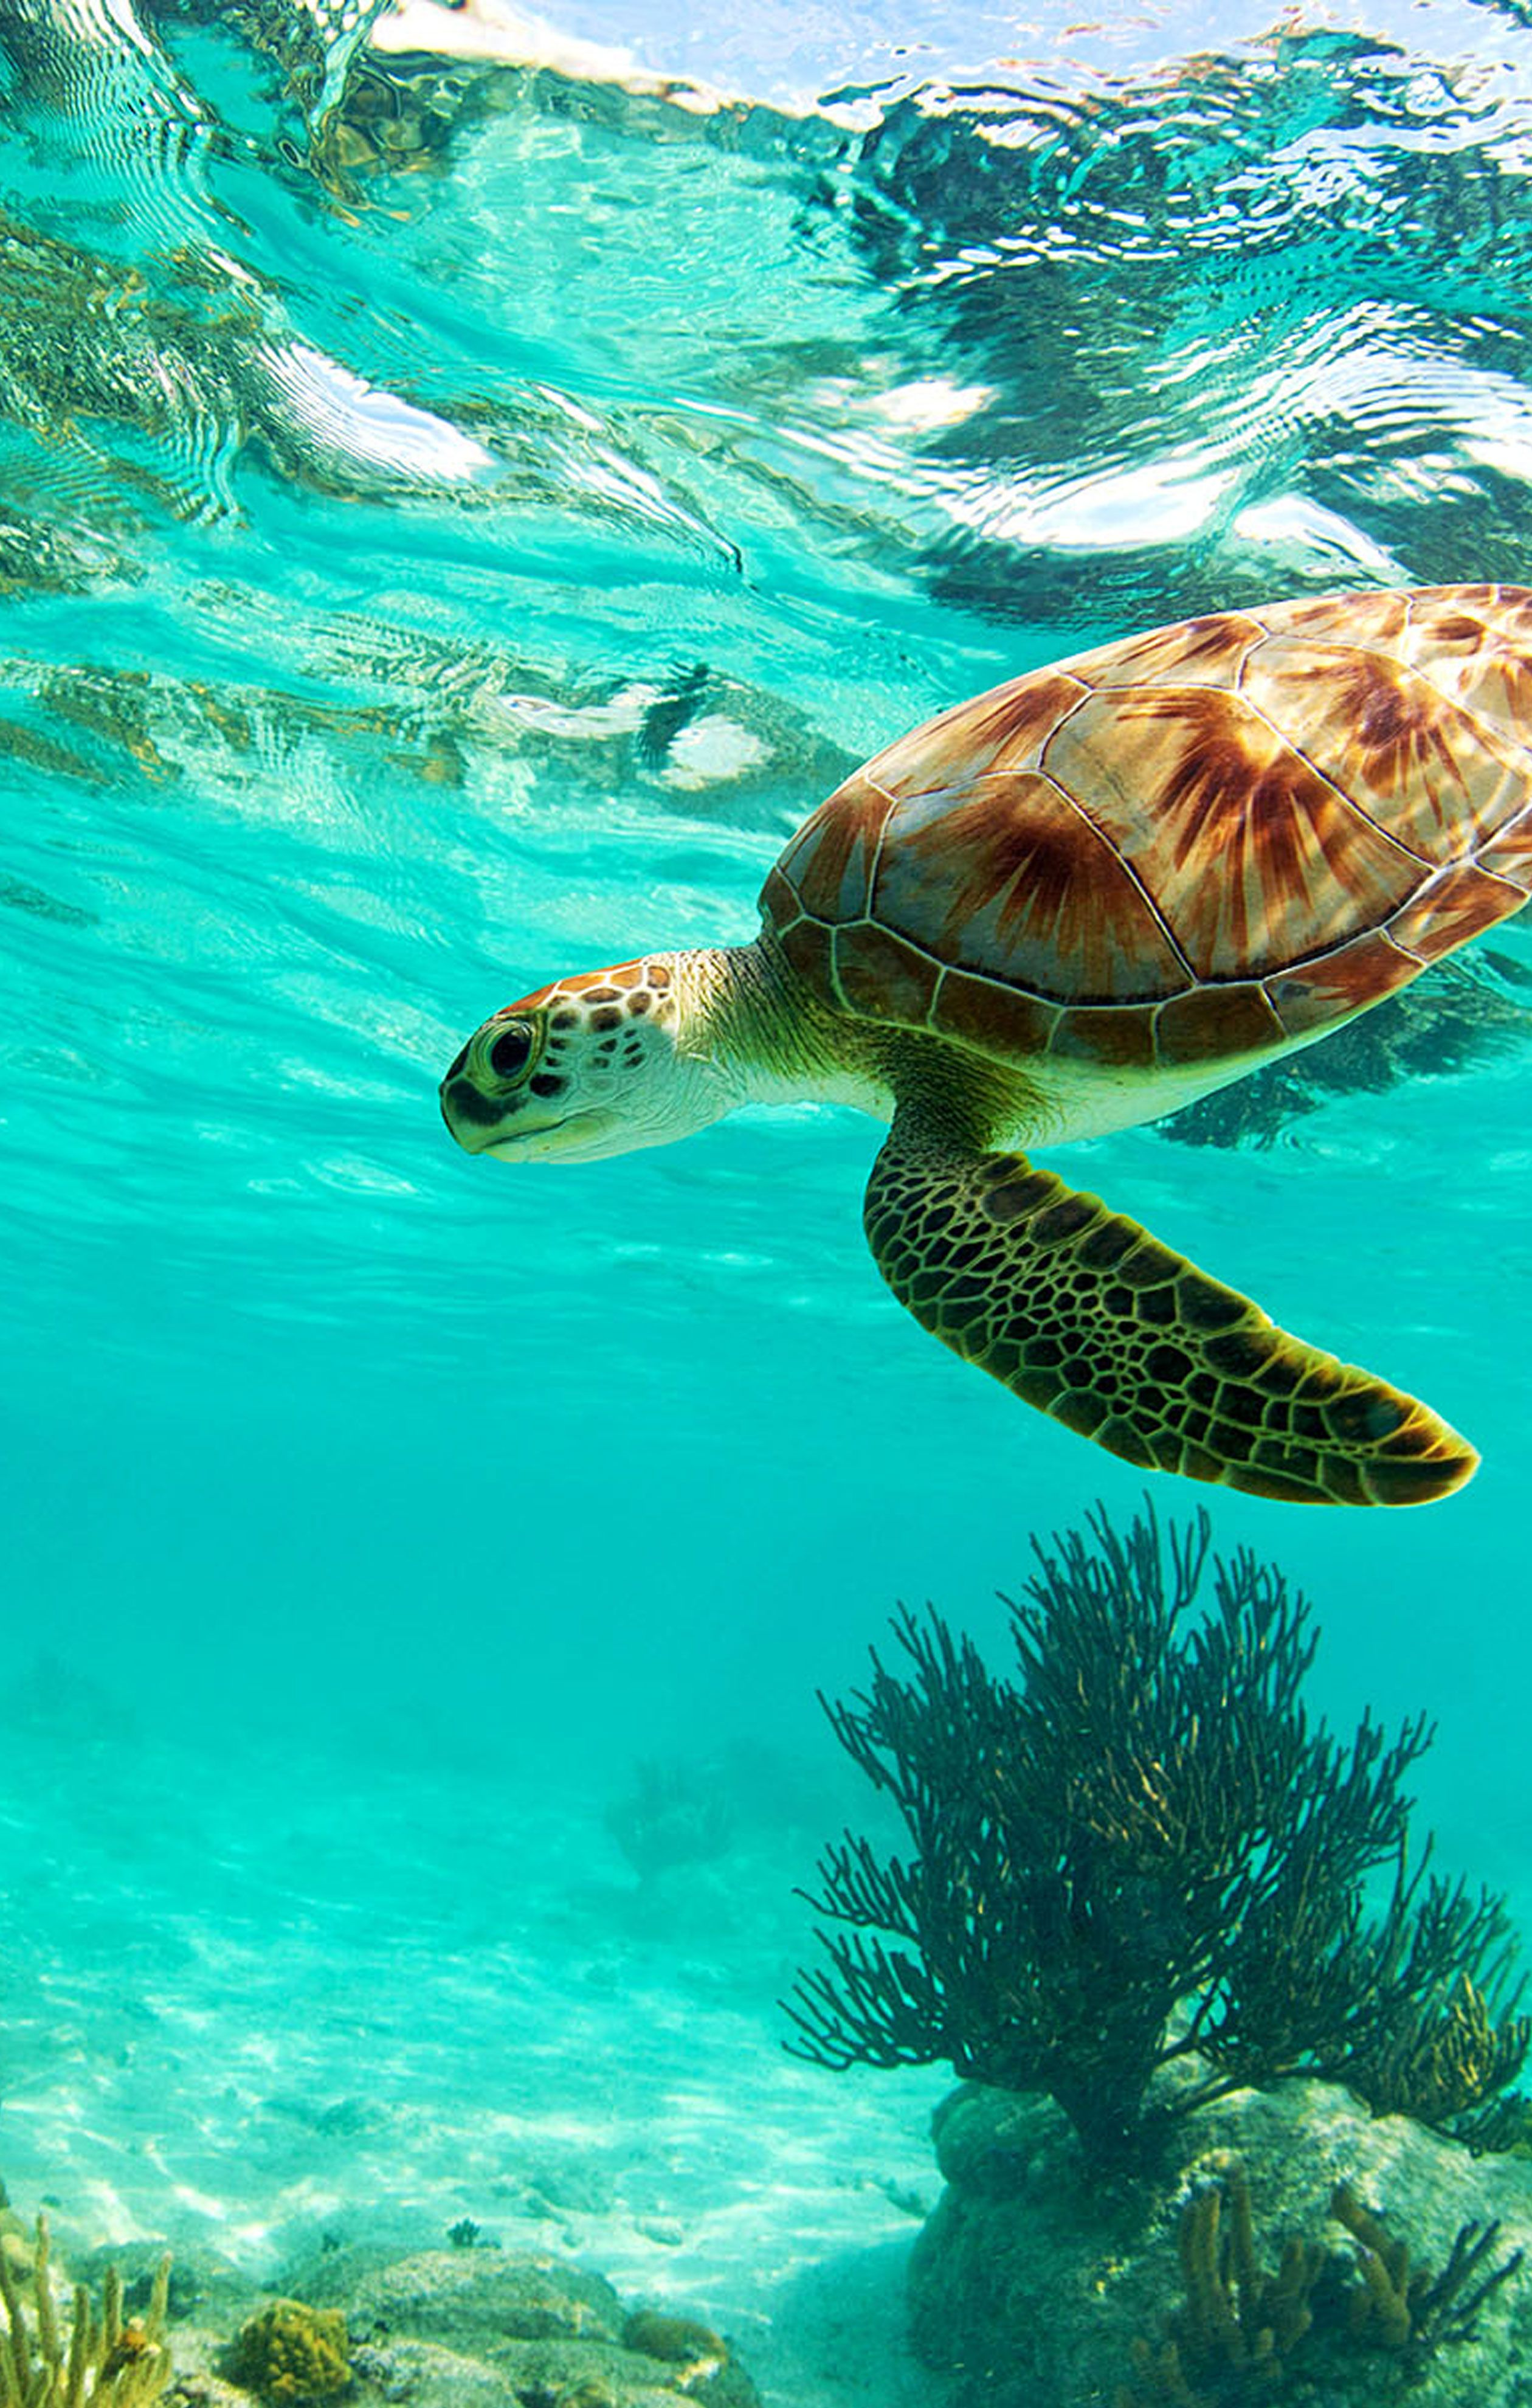 This sea turtle swims through the warm blue waters of the Caribbean ...